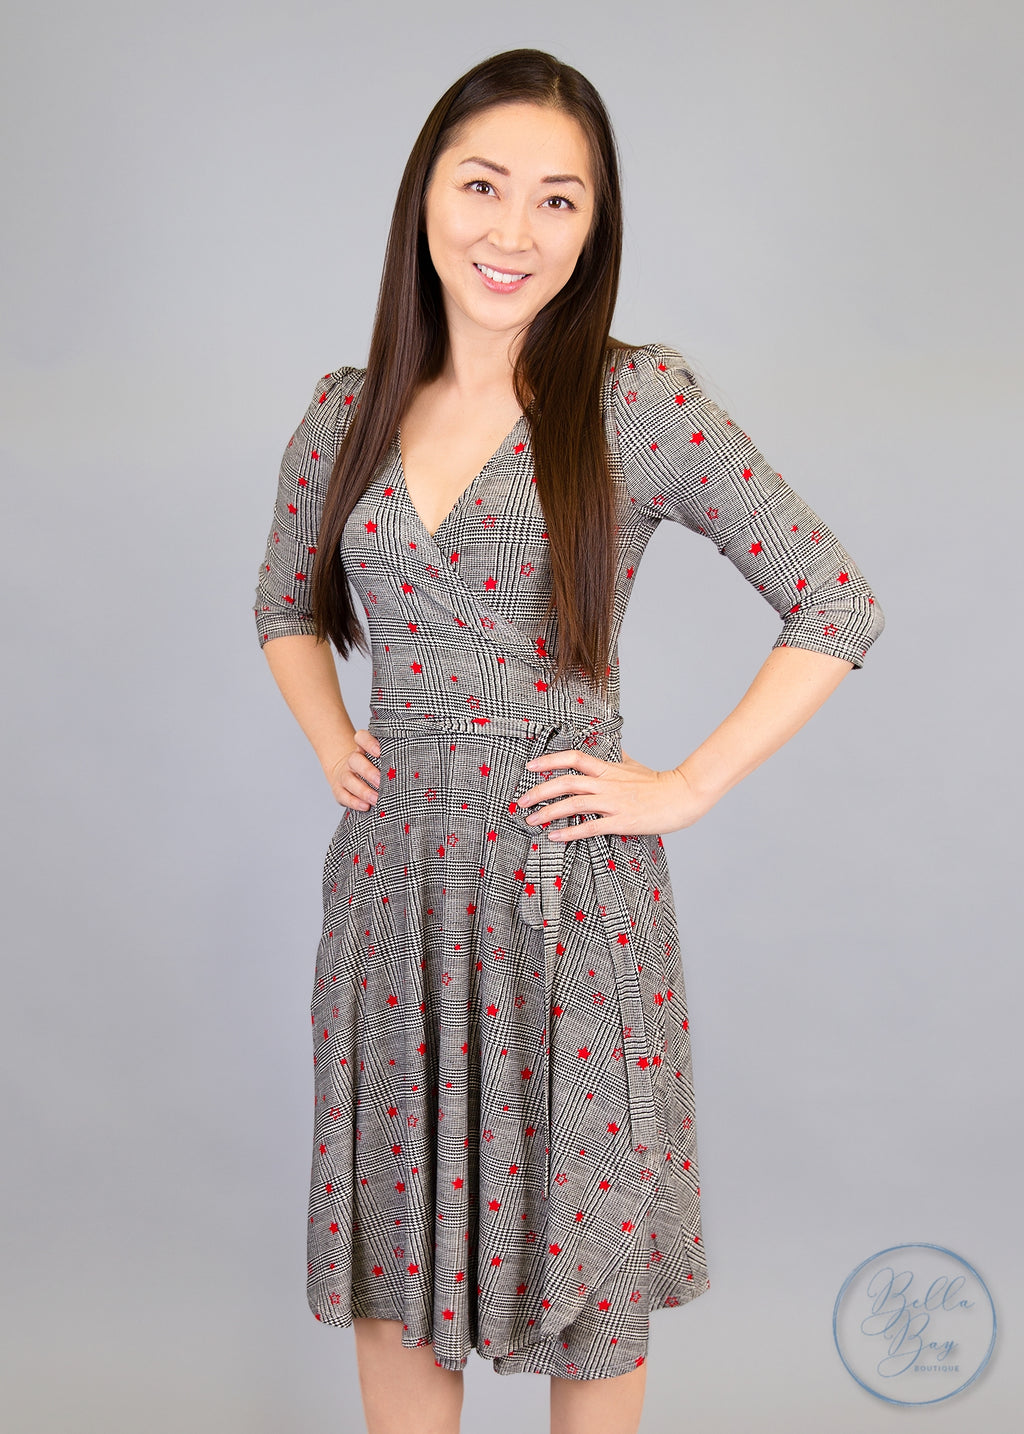 Paisley Raye Petunia Wrap Dress- Black and Red Star (2X) - Paisley Raye with Bella Bay Boutique, shop now at  https://shopbellabay.com/ or locally in Newport Oregon